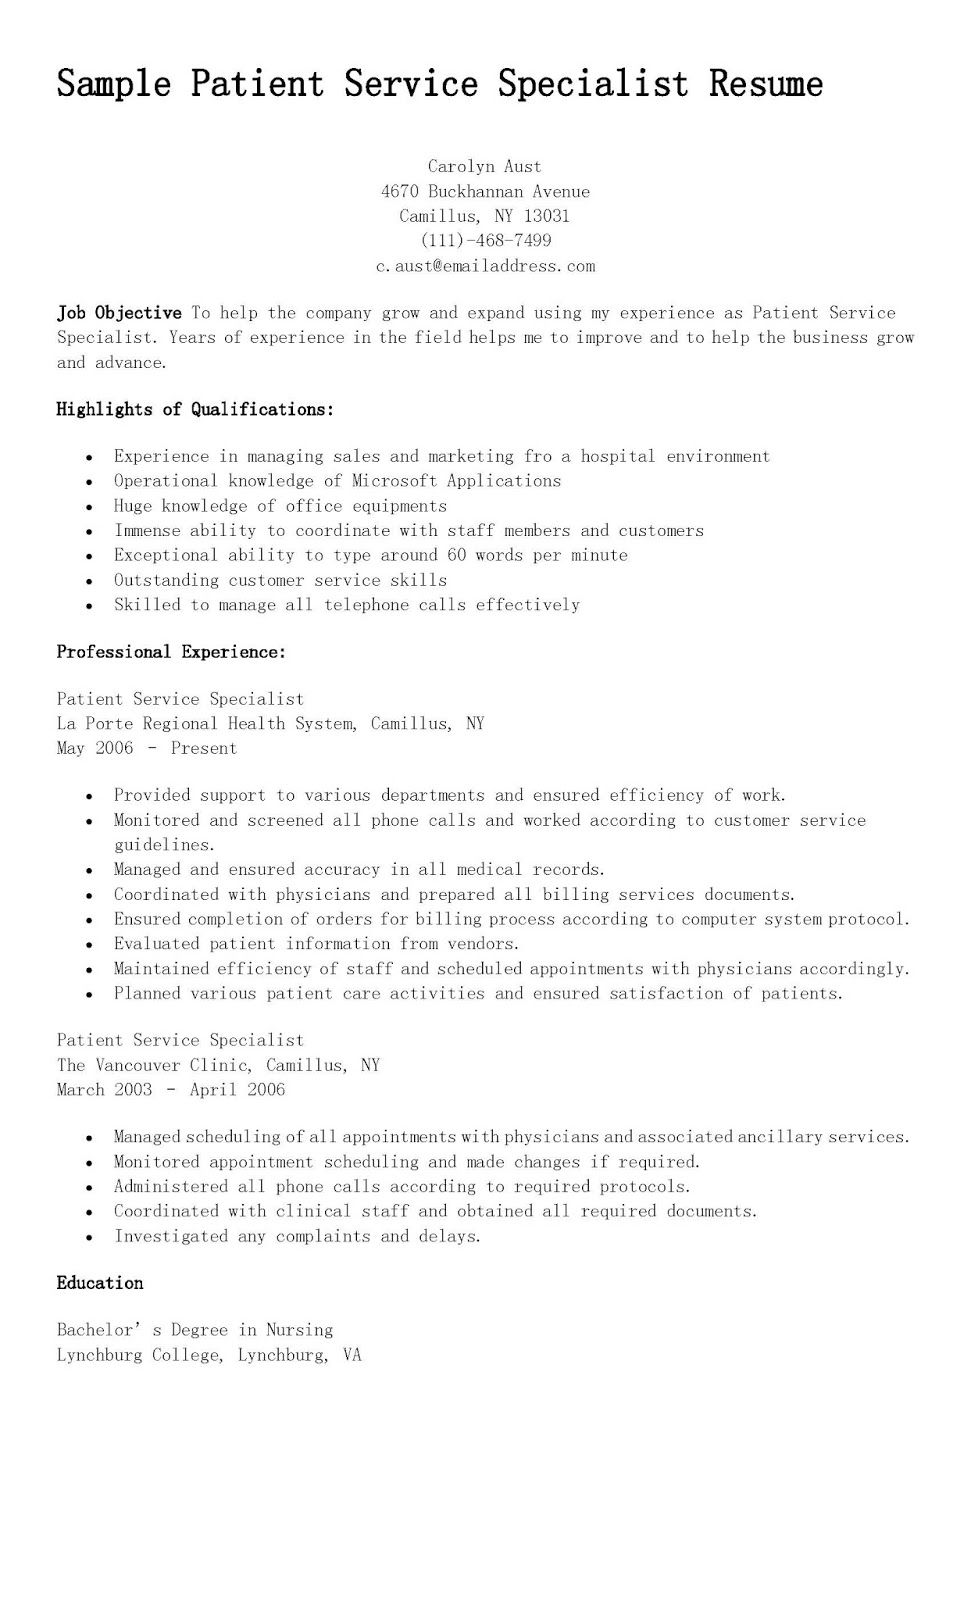 Sample Patient Service Specialist Resume